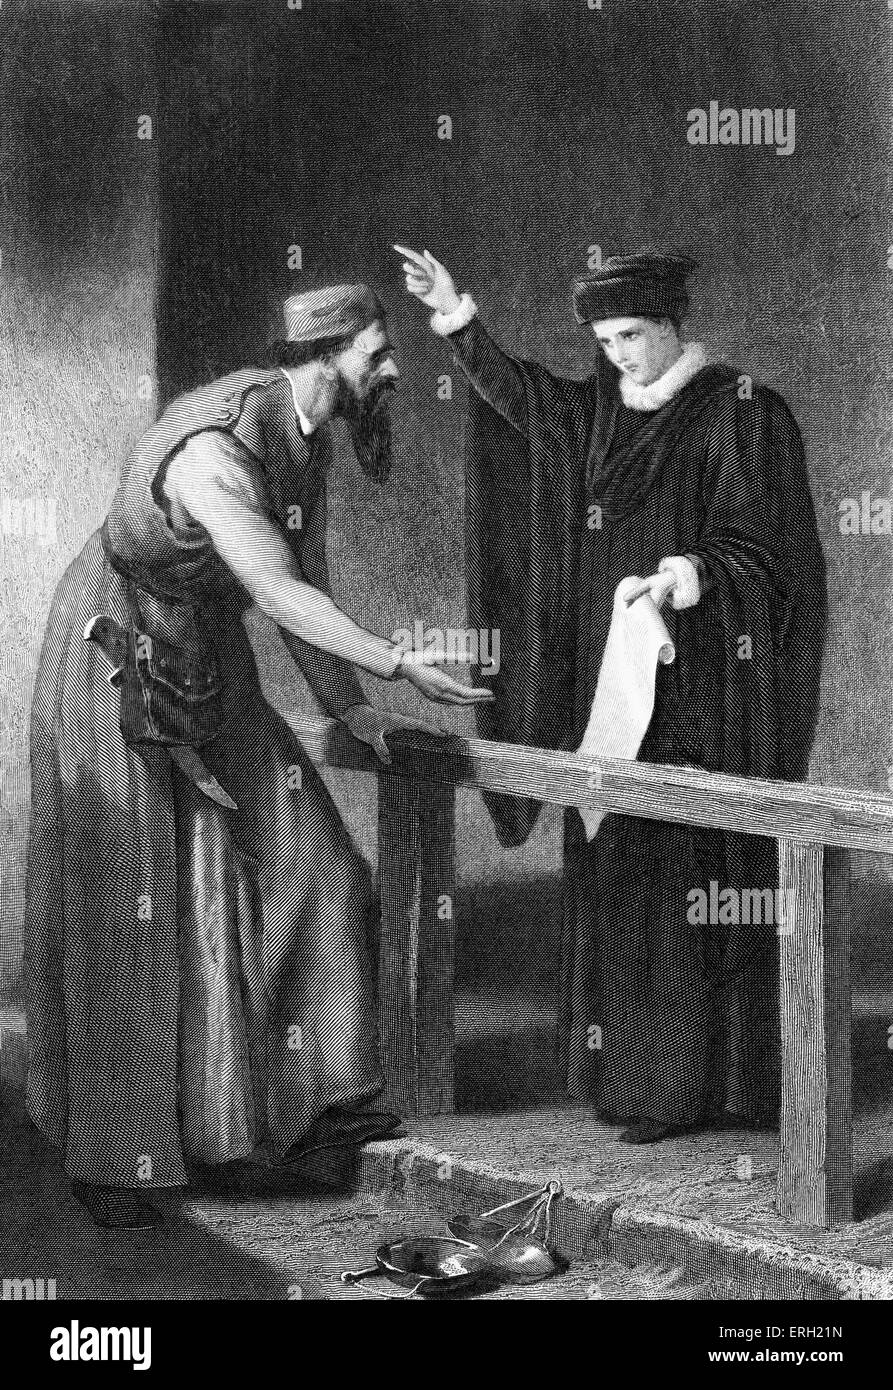 Merchant of Venice (Act IV Scene 1), play by William Shakespeare. Portia and Shylock. 'Portia: nay, if the scale - Stock Image